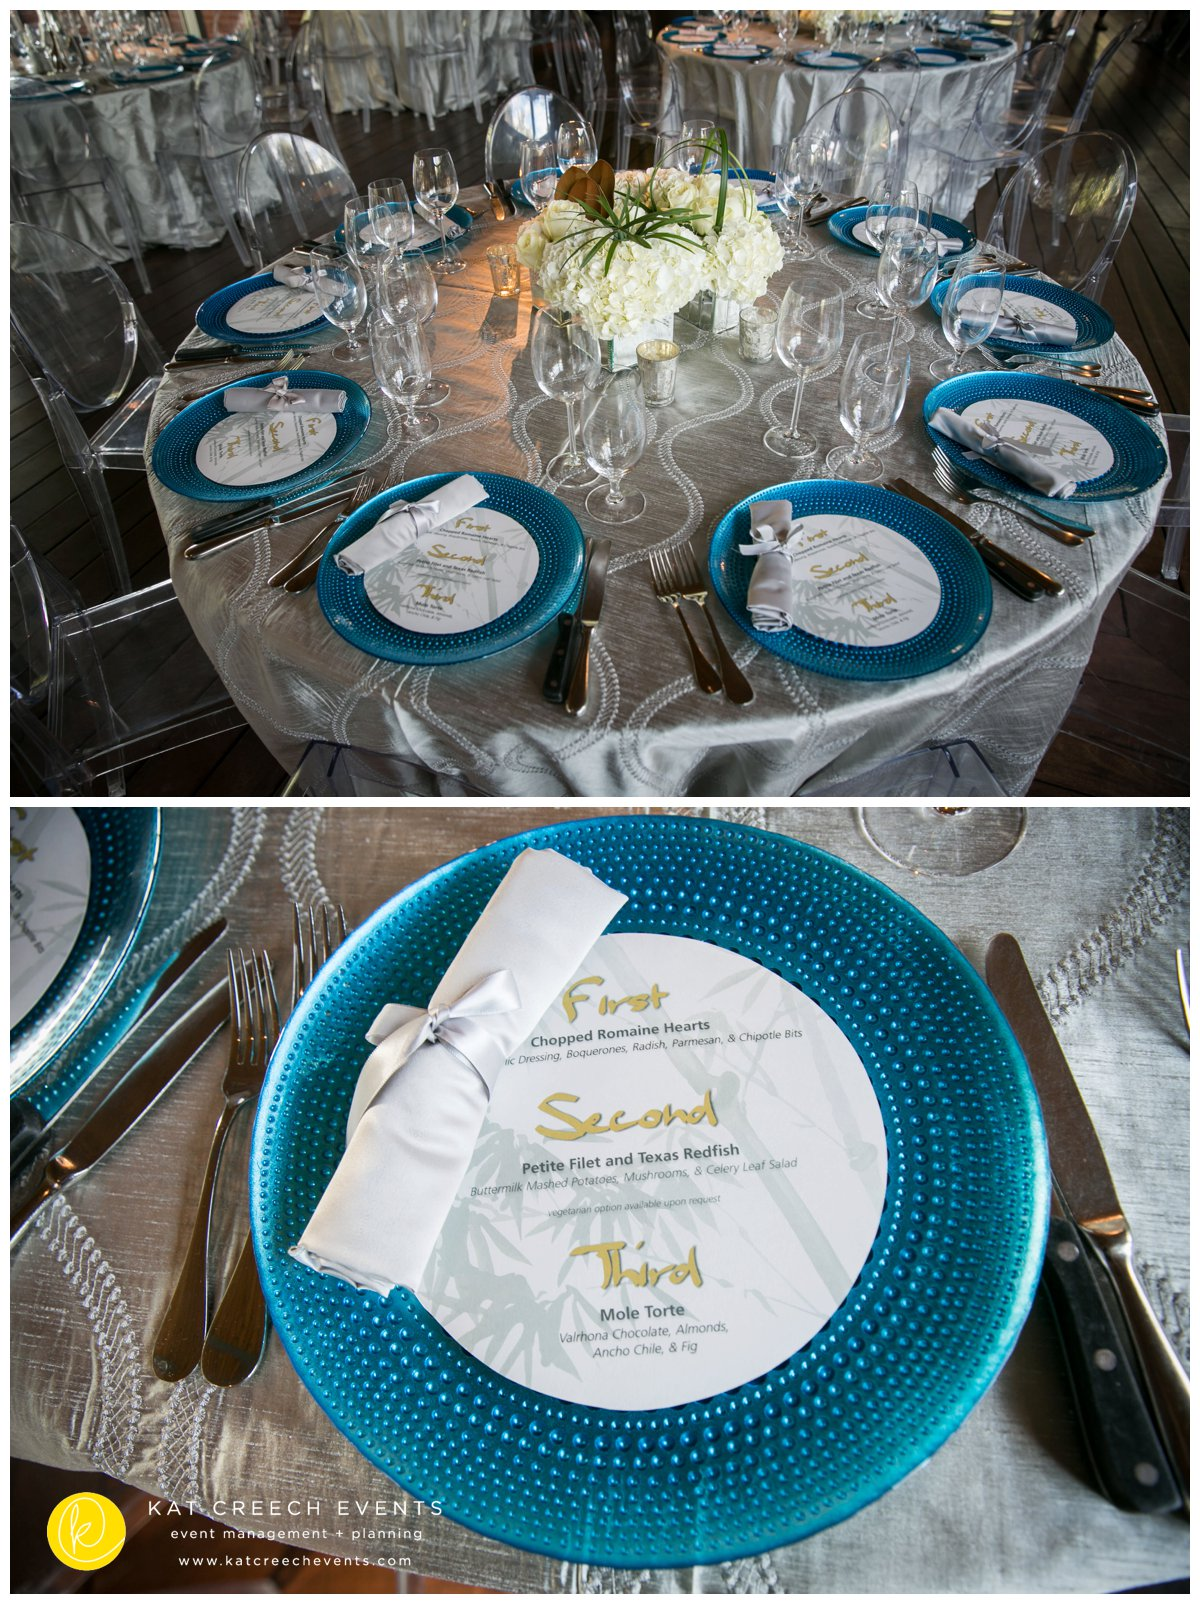 silver linen |blue chargers |ghost chairs |menu |kat creech events | event planner